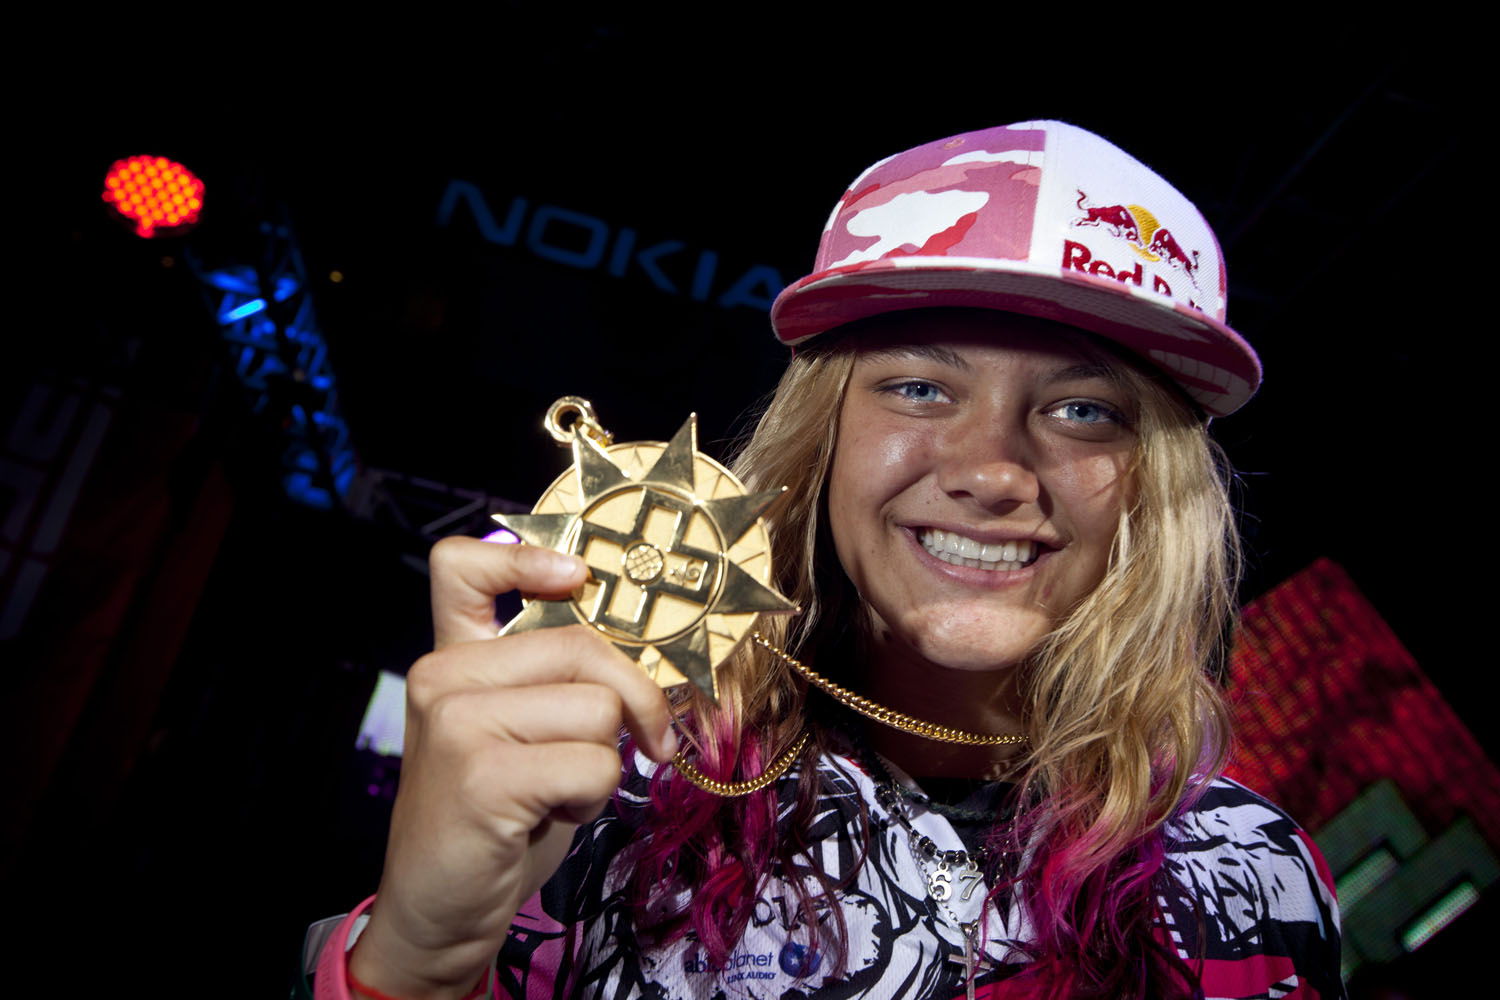 Ashley Fiolek wins gold in Women's Moto X during X Games 16 on July 29, 2010 in Los Angeles, California.